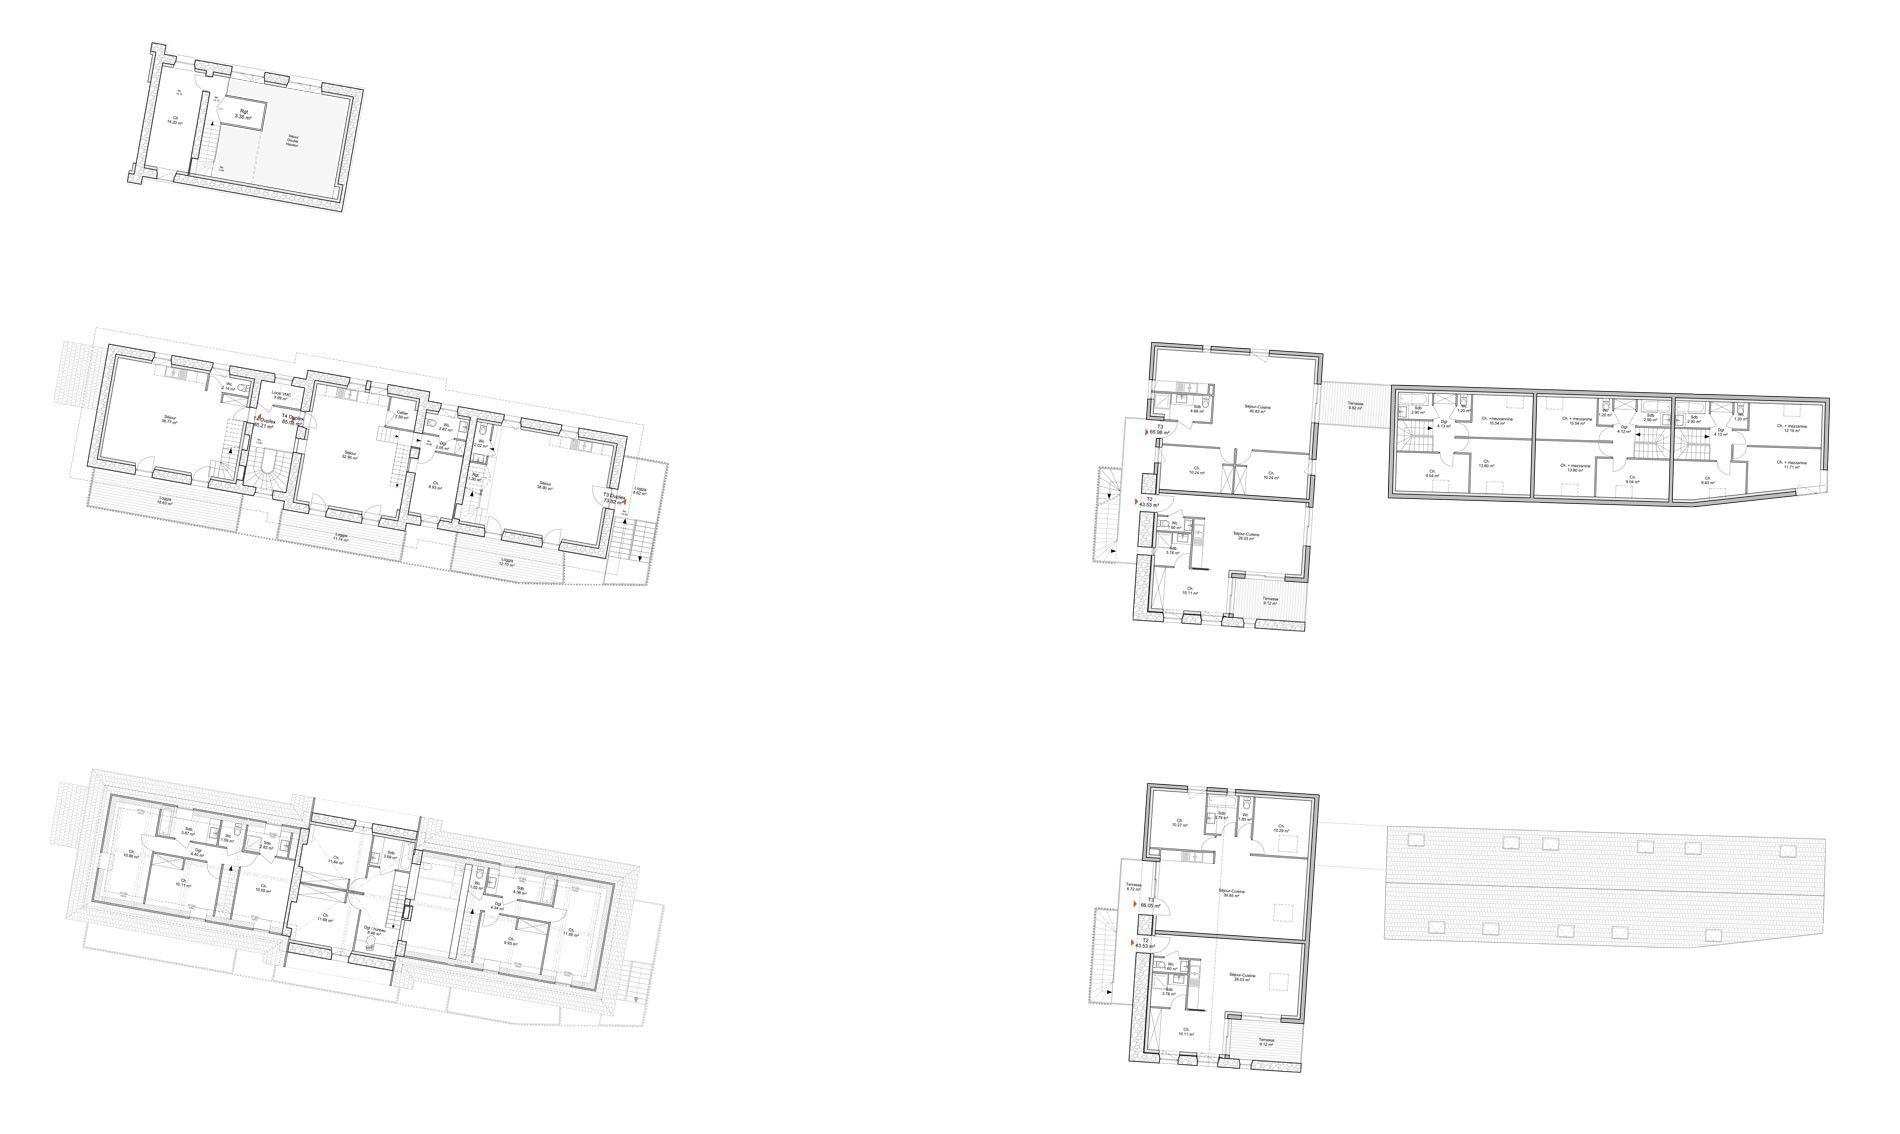 ASB-logement-rehabilitation-saint-jeoire-architectureetages-plan